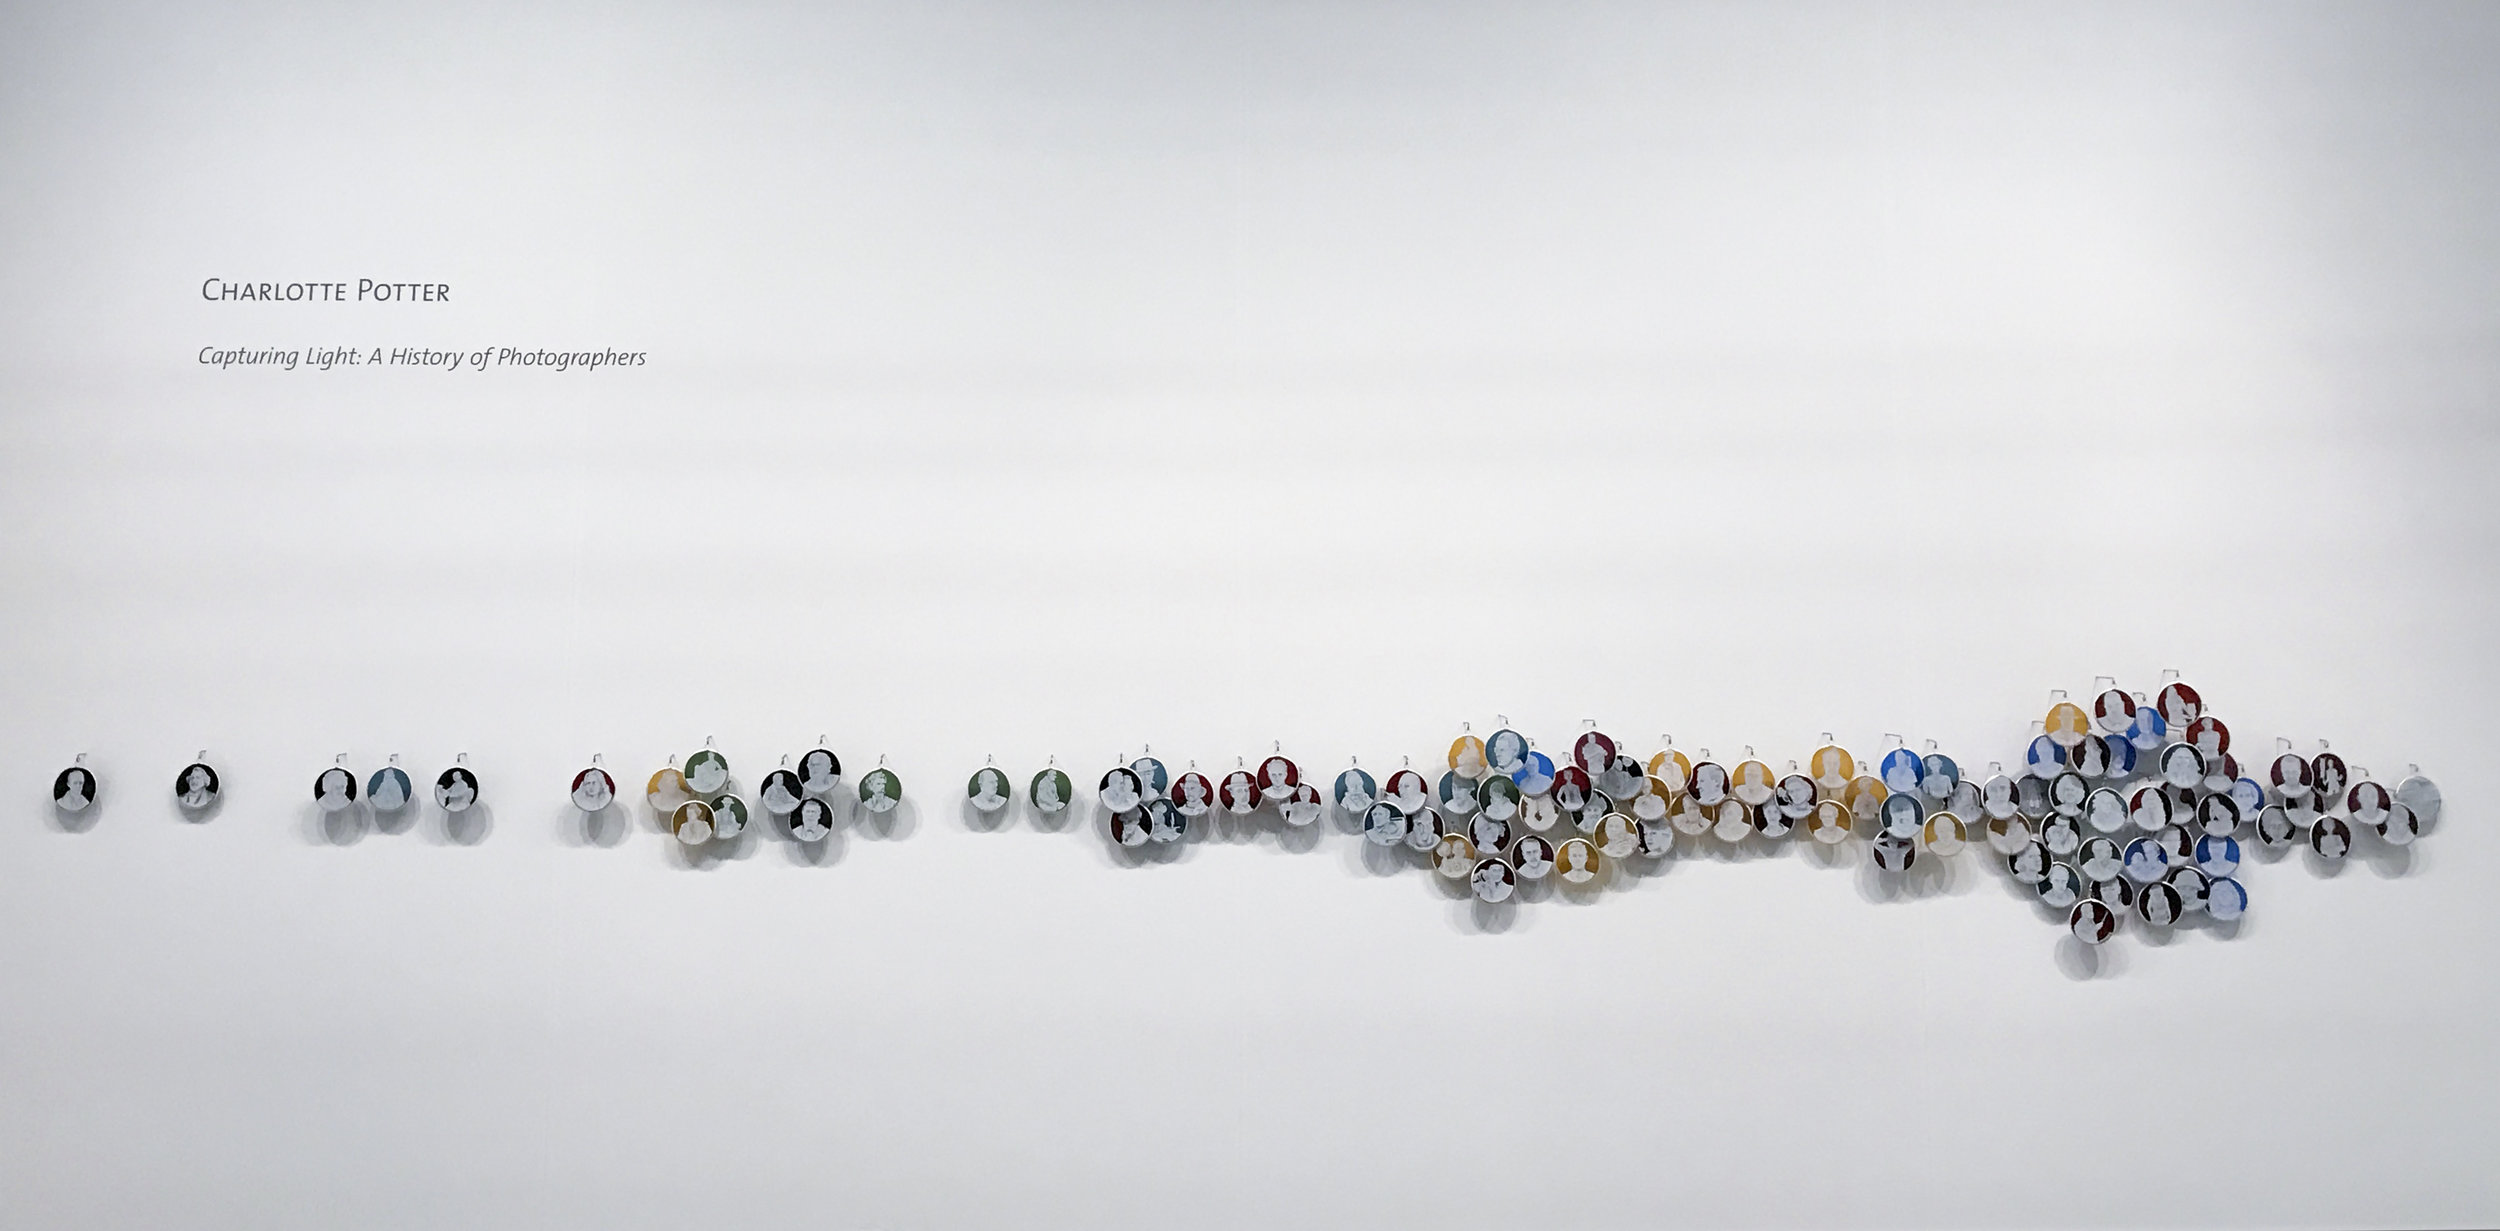 Capturing Light: A History of Photographers , Charlotte Potter, 2017, Hand engraved glass, silver, tin, stainless steel, 3 x 3 inches each cameo, 13 feet long installation. On view at Booth 503.